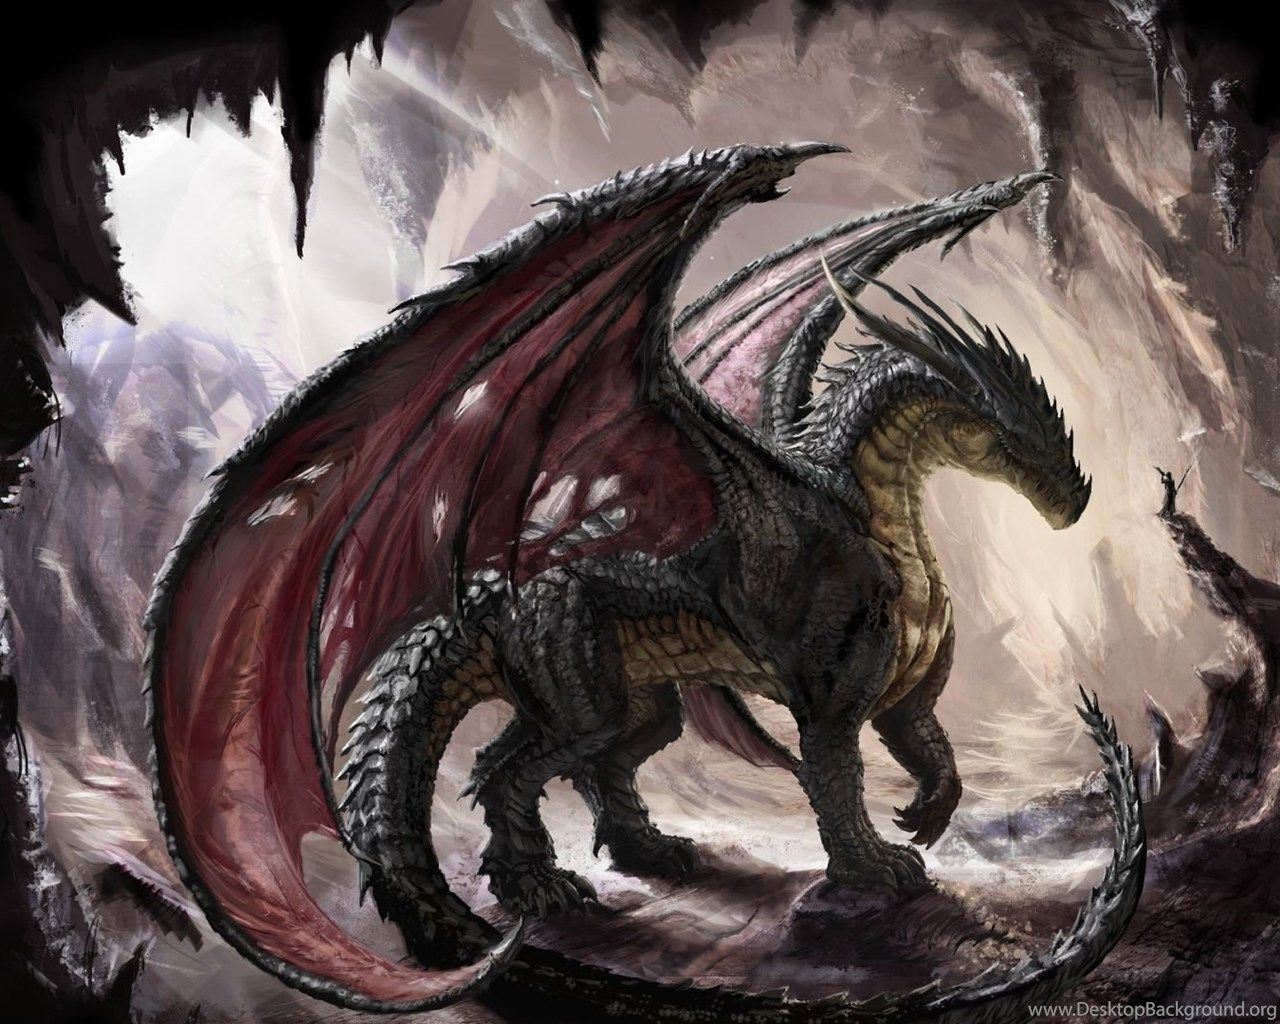 1080p dragon wallpapers top free 1080p dragon - Dragon backgrounds 1920x1080 ...